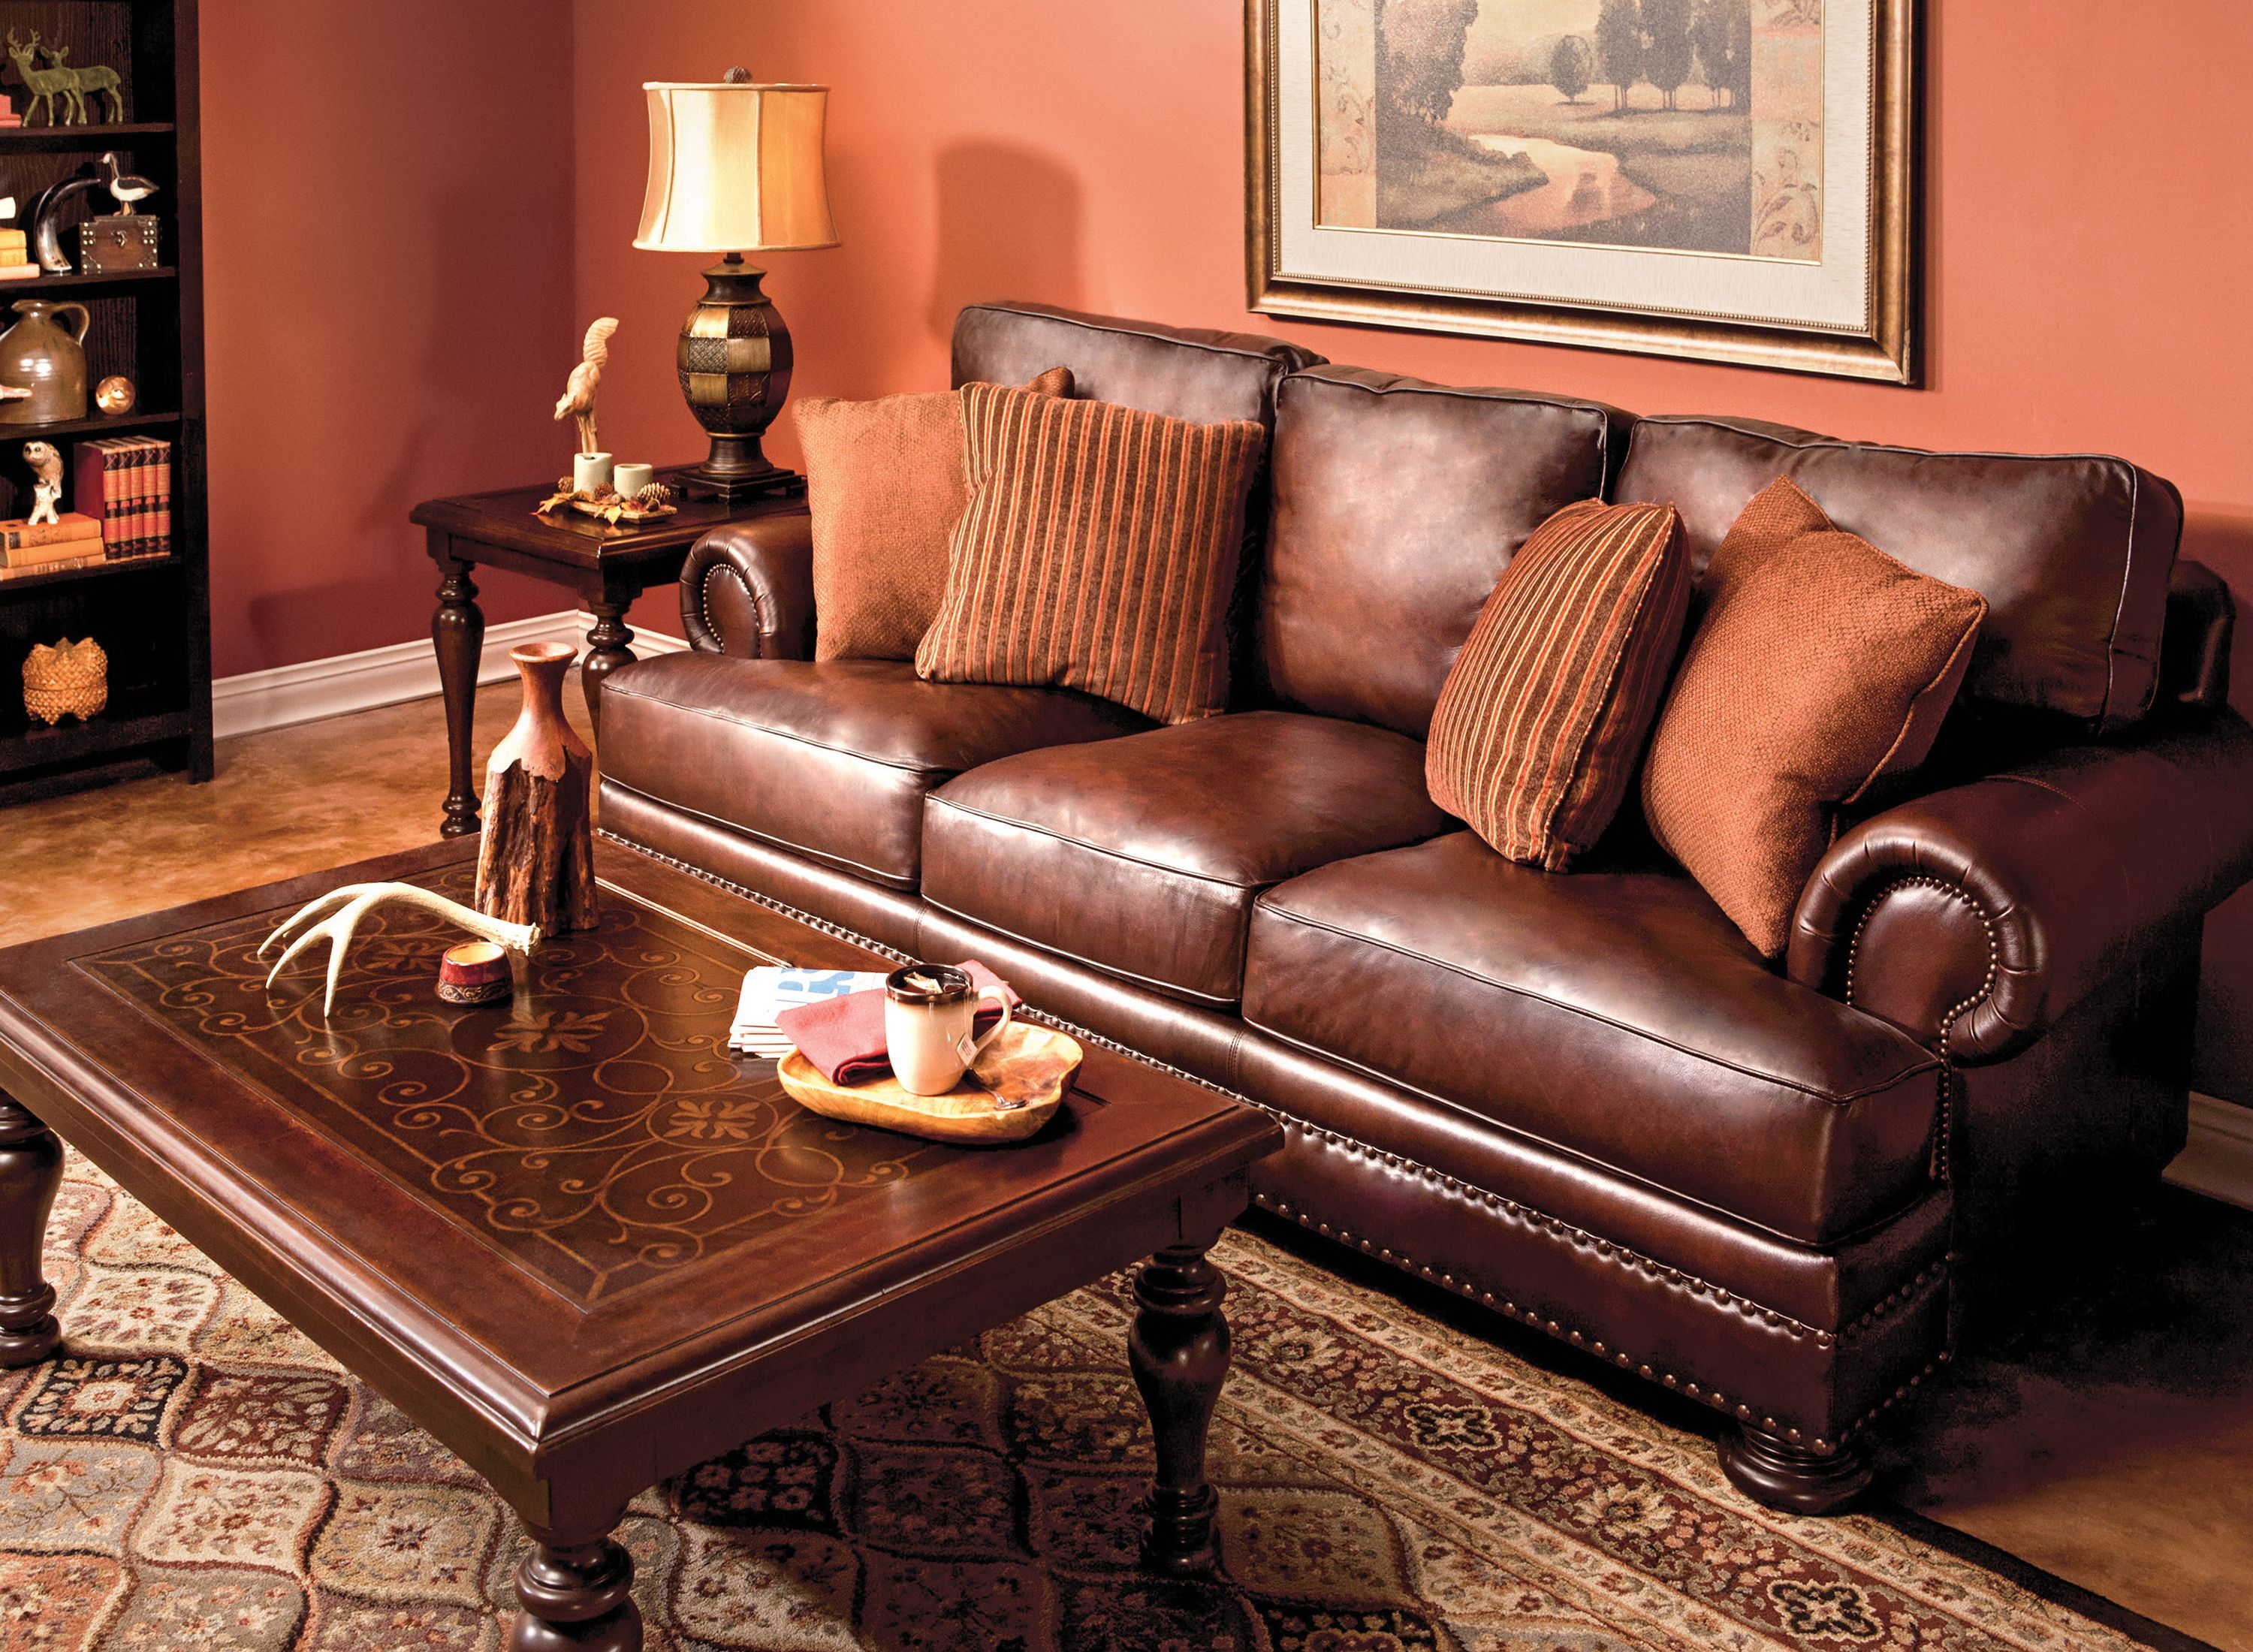 DR Decoration Raymour and flanigan, Furniture, Decor